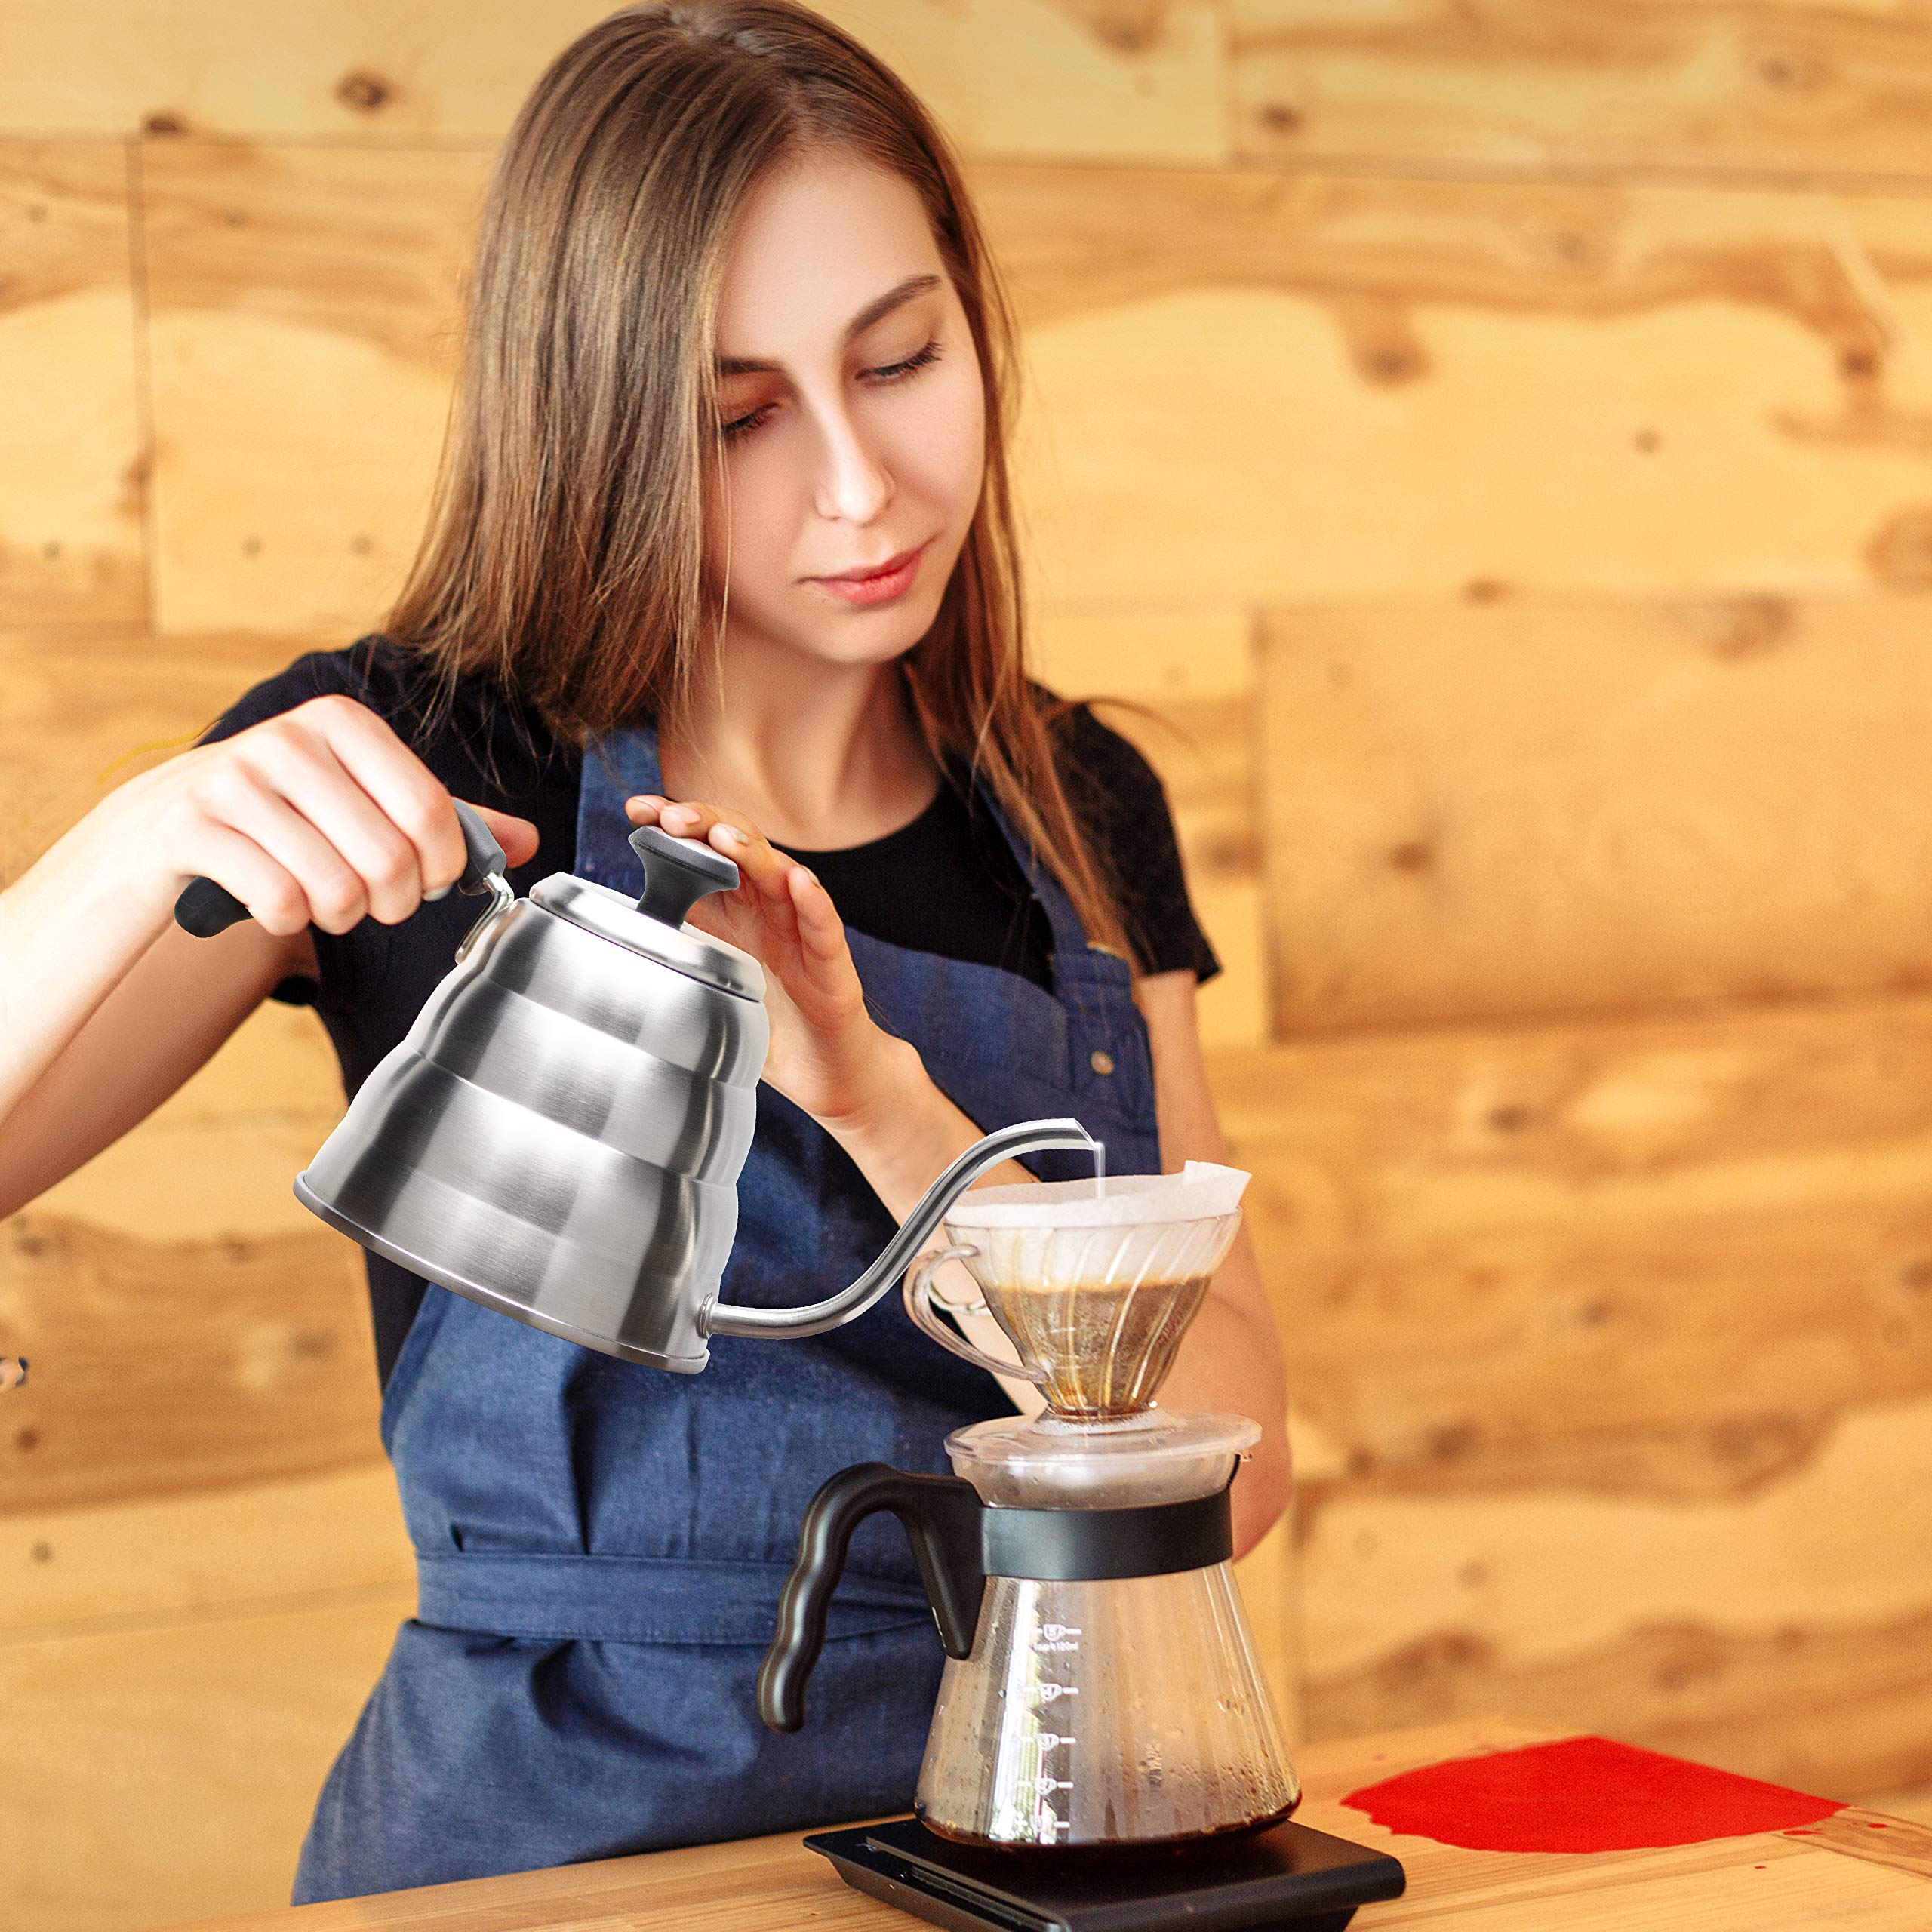 Pour Over Coffee Kettle with Outstanding Thermometer (40floz) - Gooseneck Kettle - Triple Layer Stainless Steel Bottom Works on any Heat Source for Drip Coffee and Tea by Primica (Image #4)